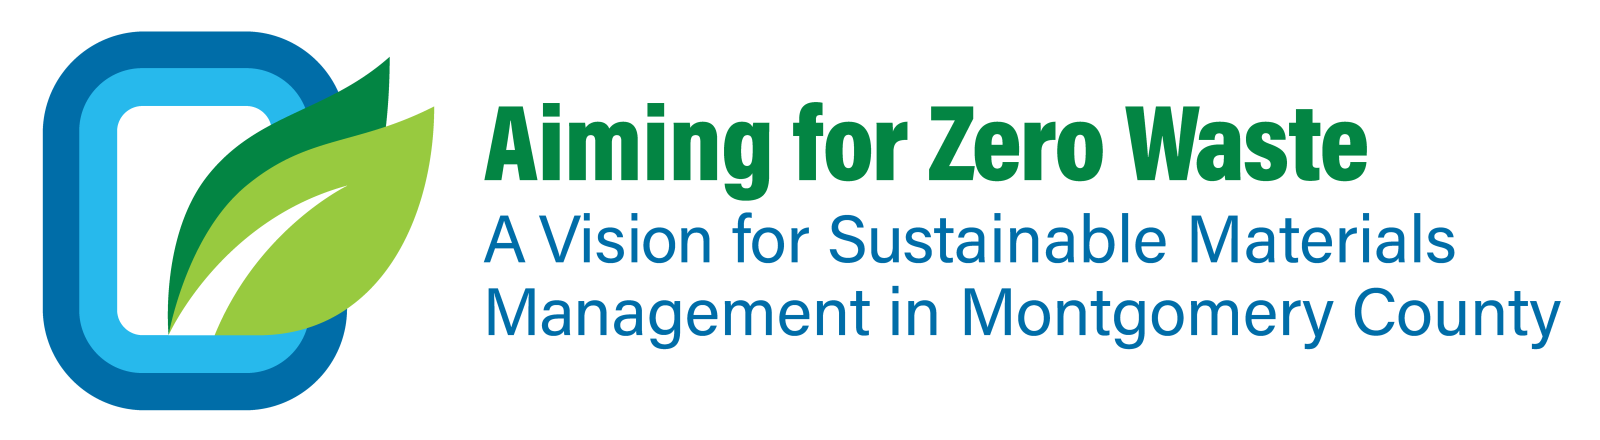 Aiming for Zero Waste: A Vision for Sustainable Materials Management in Montgomery County